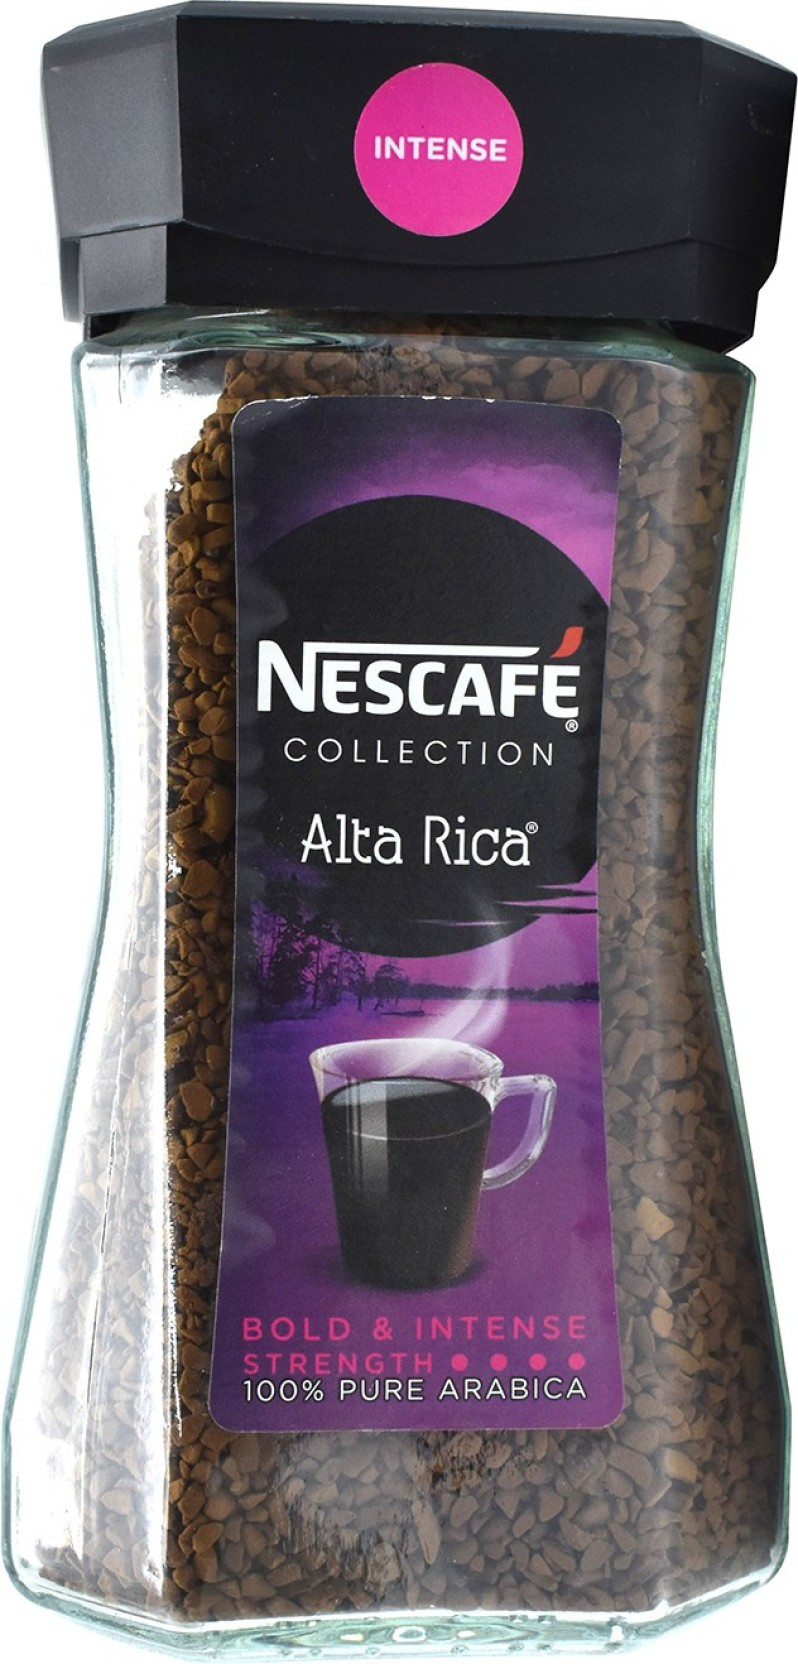 Nescafe Collection Alta Rica Bold Intense Strength Coffee